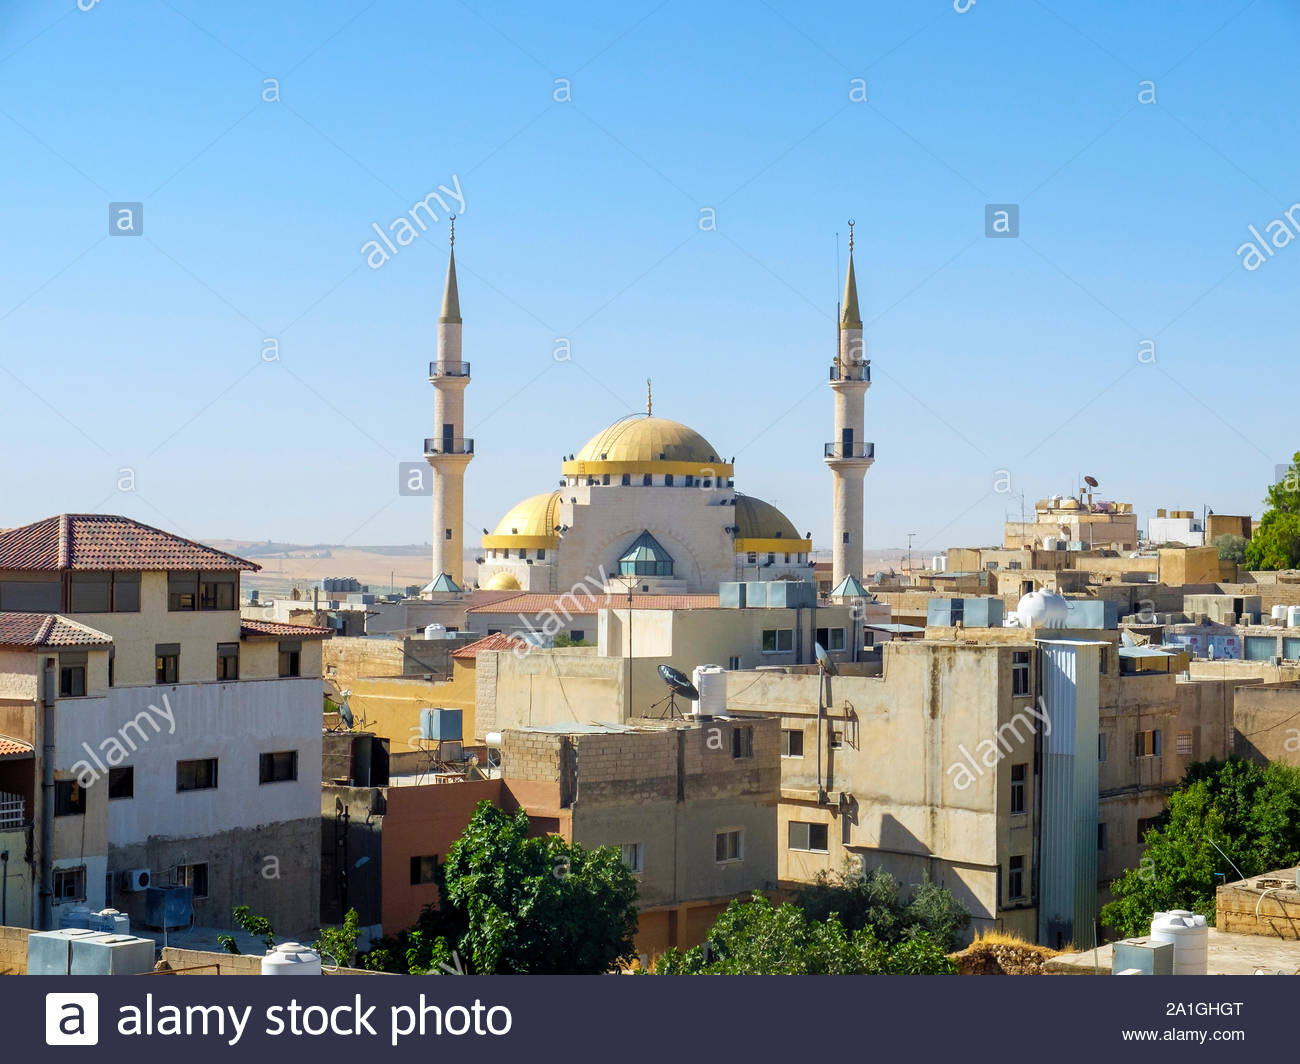 Jordan, Madaba Governorate, Madaba. King Hussein Mosque. Stock Photo